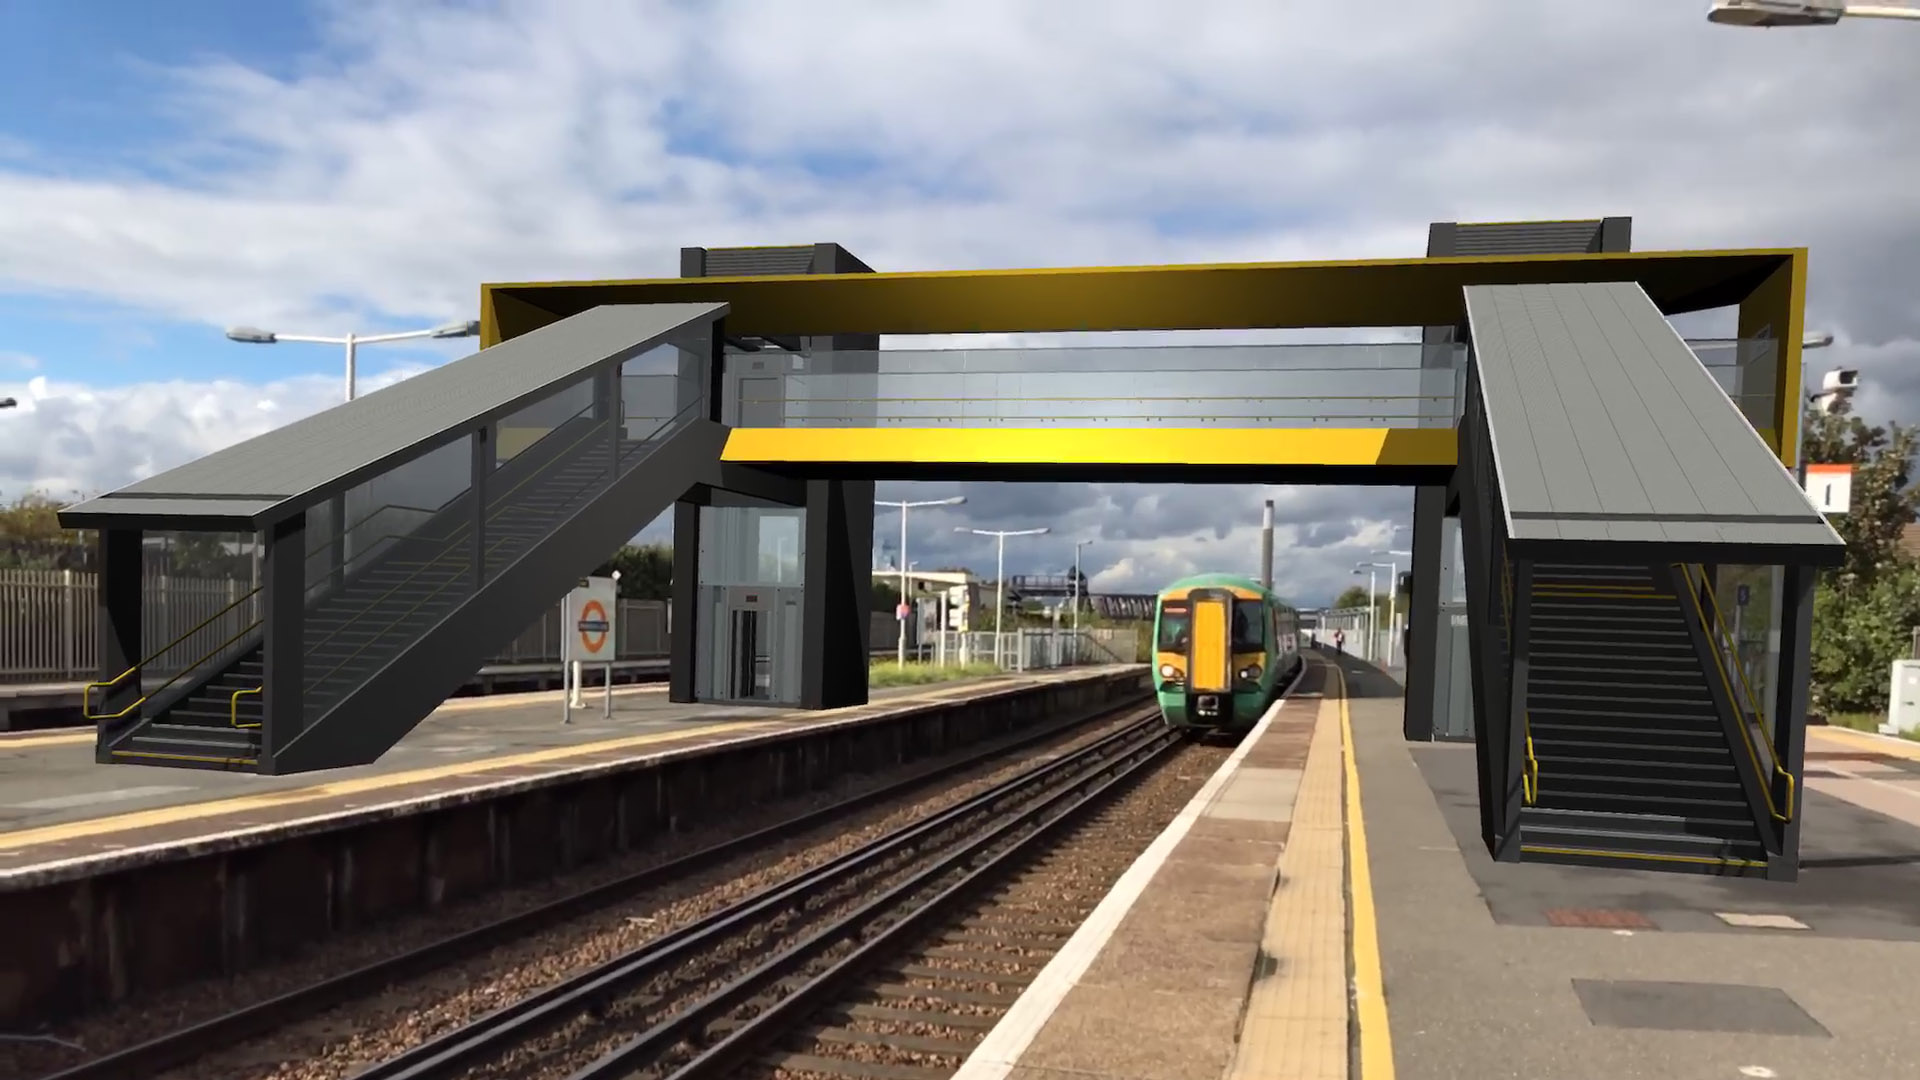 Network Rail Engages Passengers with Augmented Reality